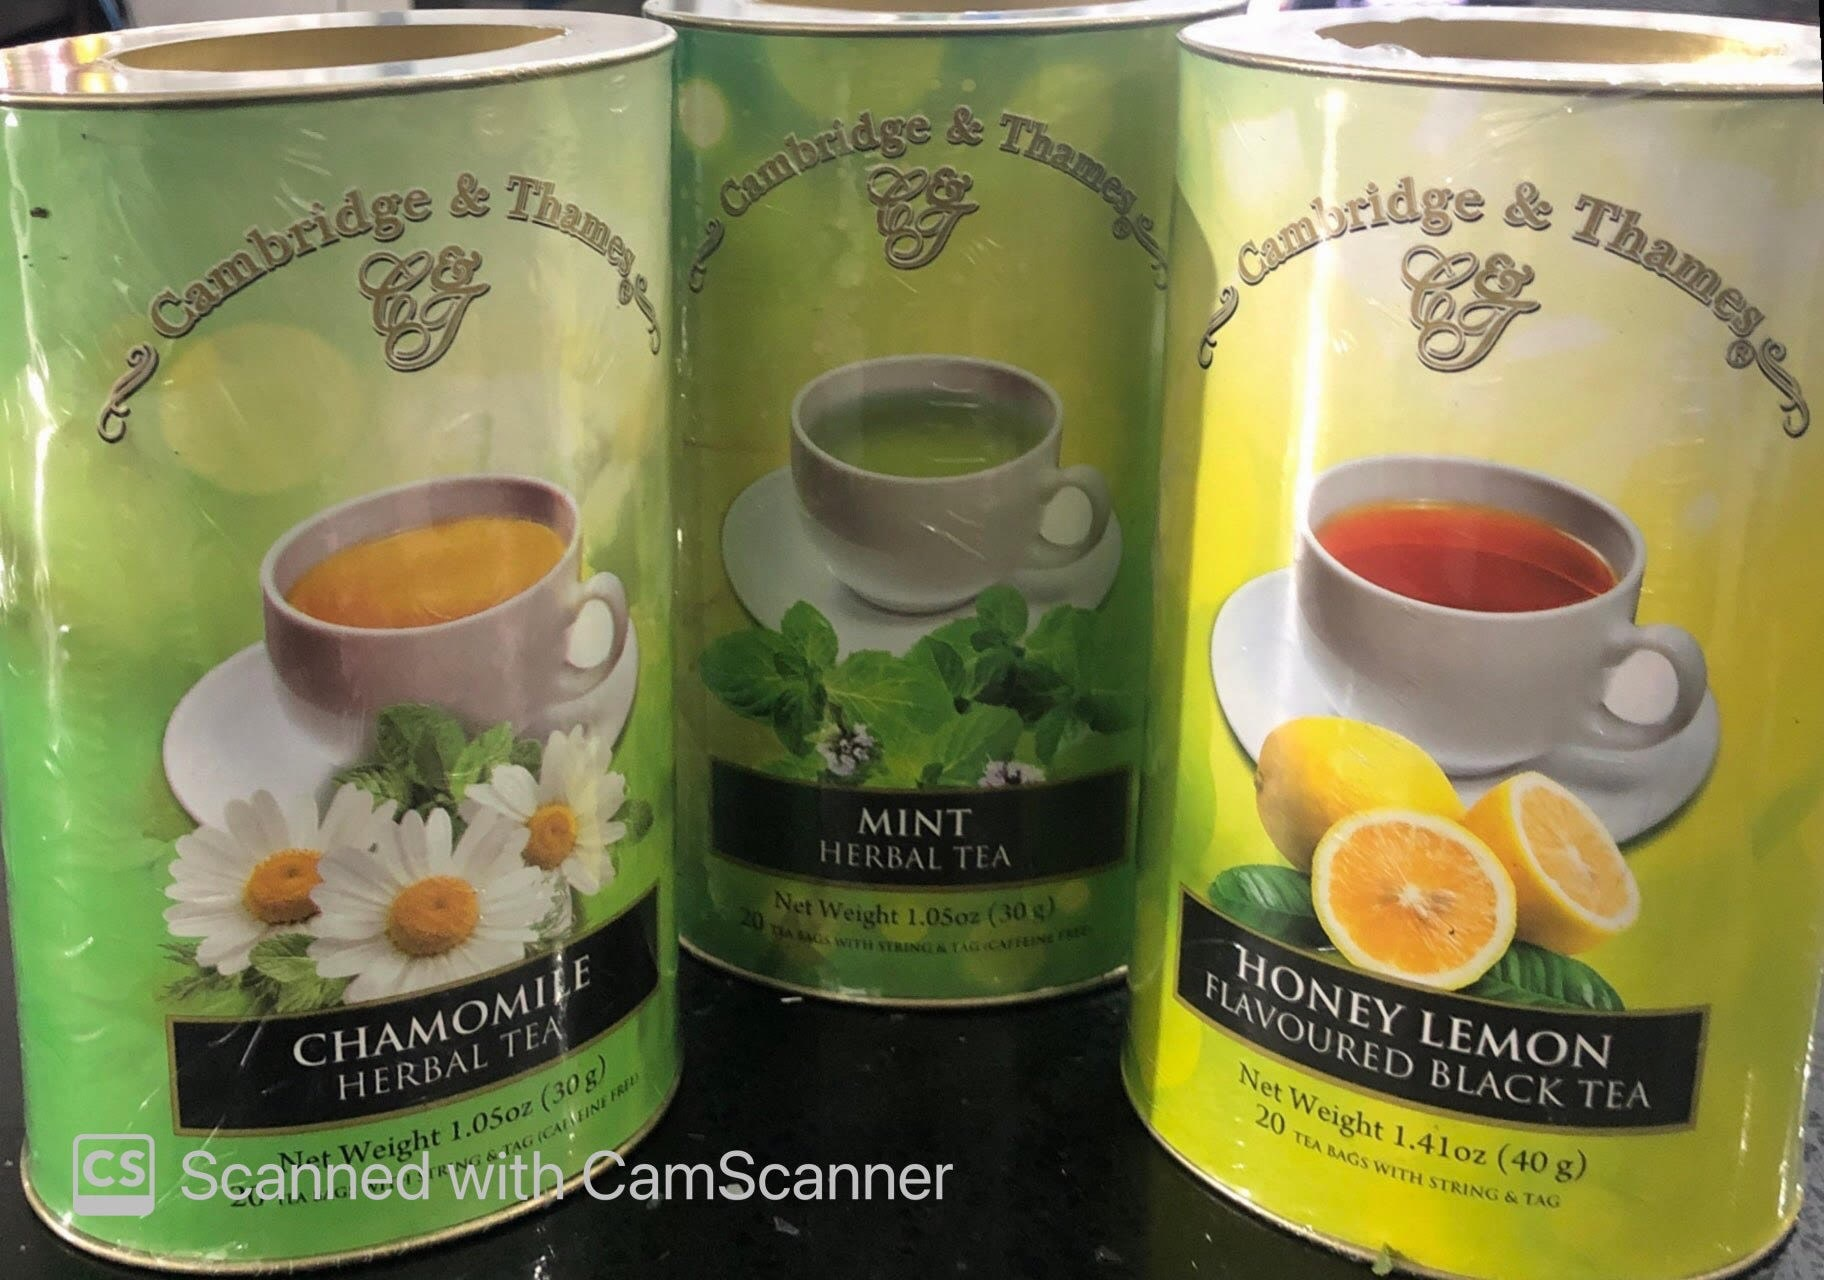 Cambridge & Thames Tea - 20 bags